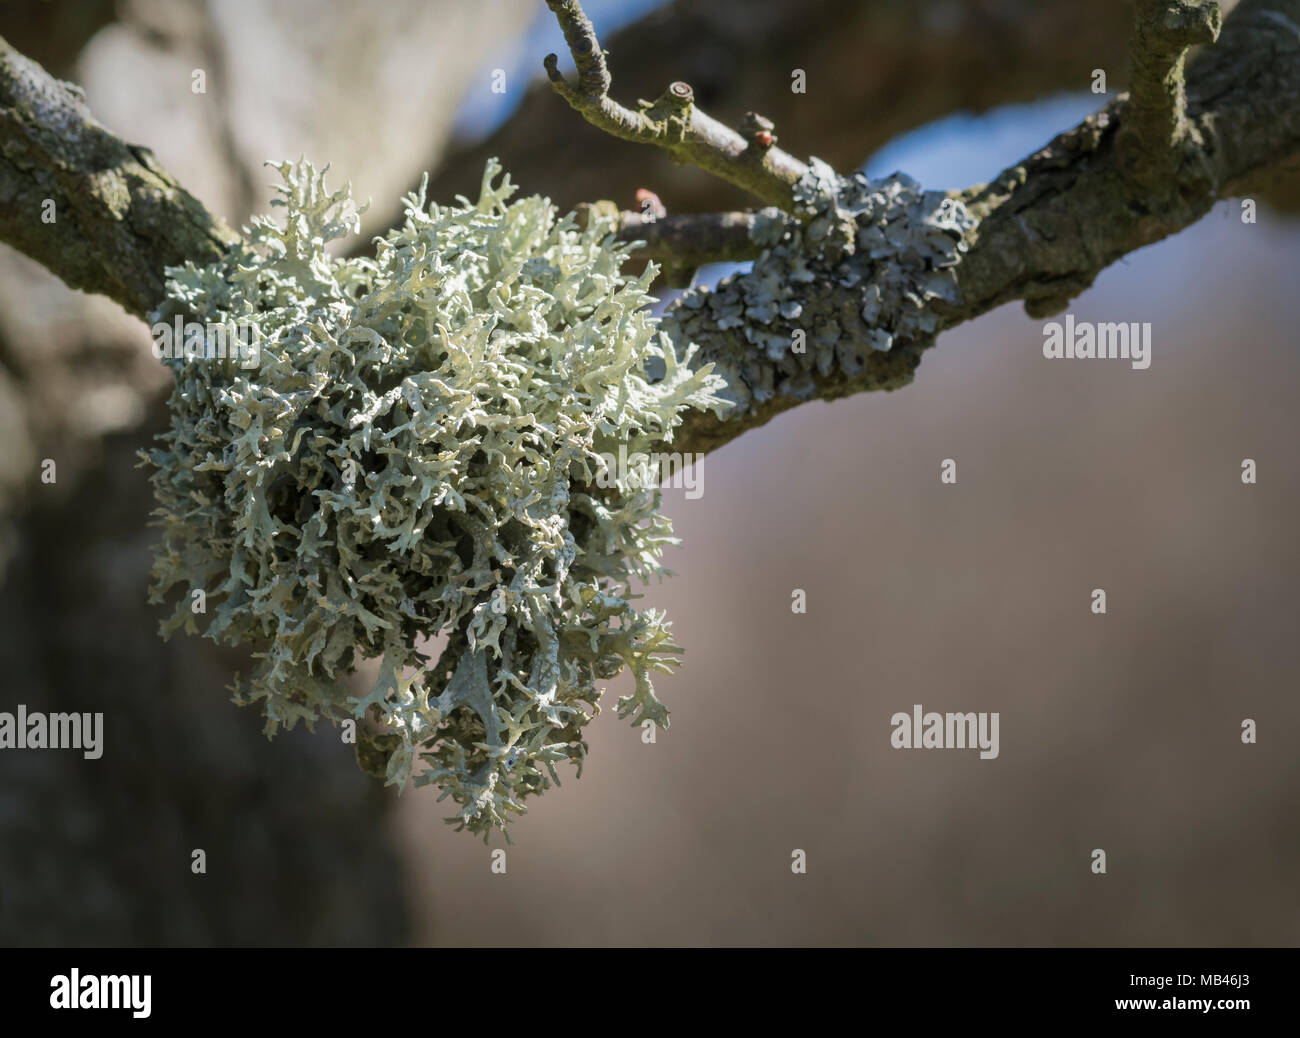 Evernia prunastri photographed on a Hawthorn tree in Wensleydale, Yorkshire. - Stock Image